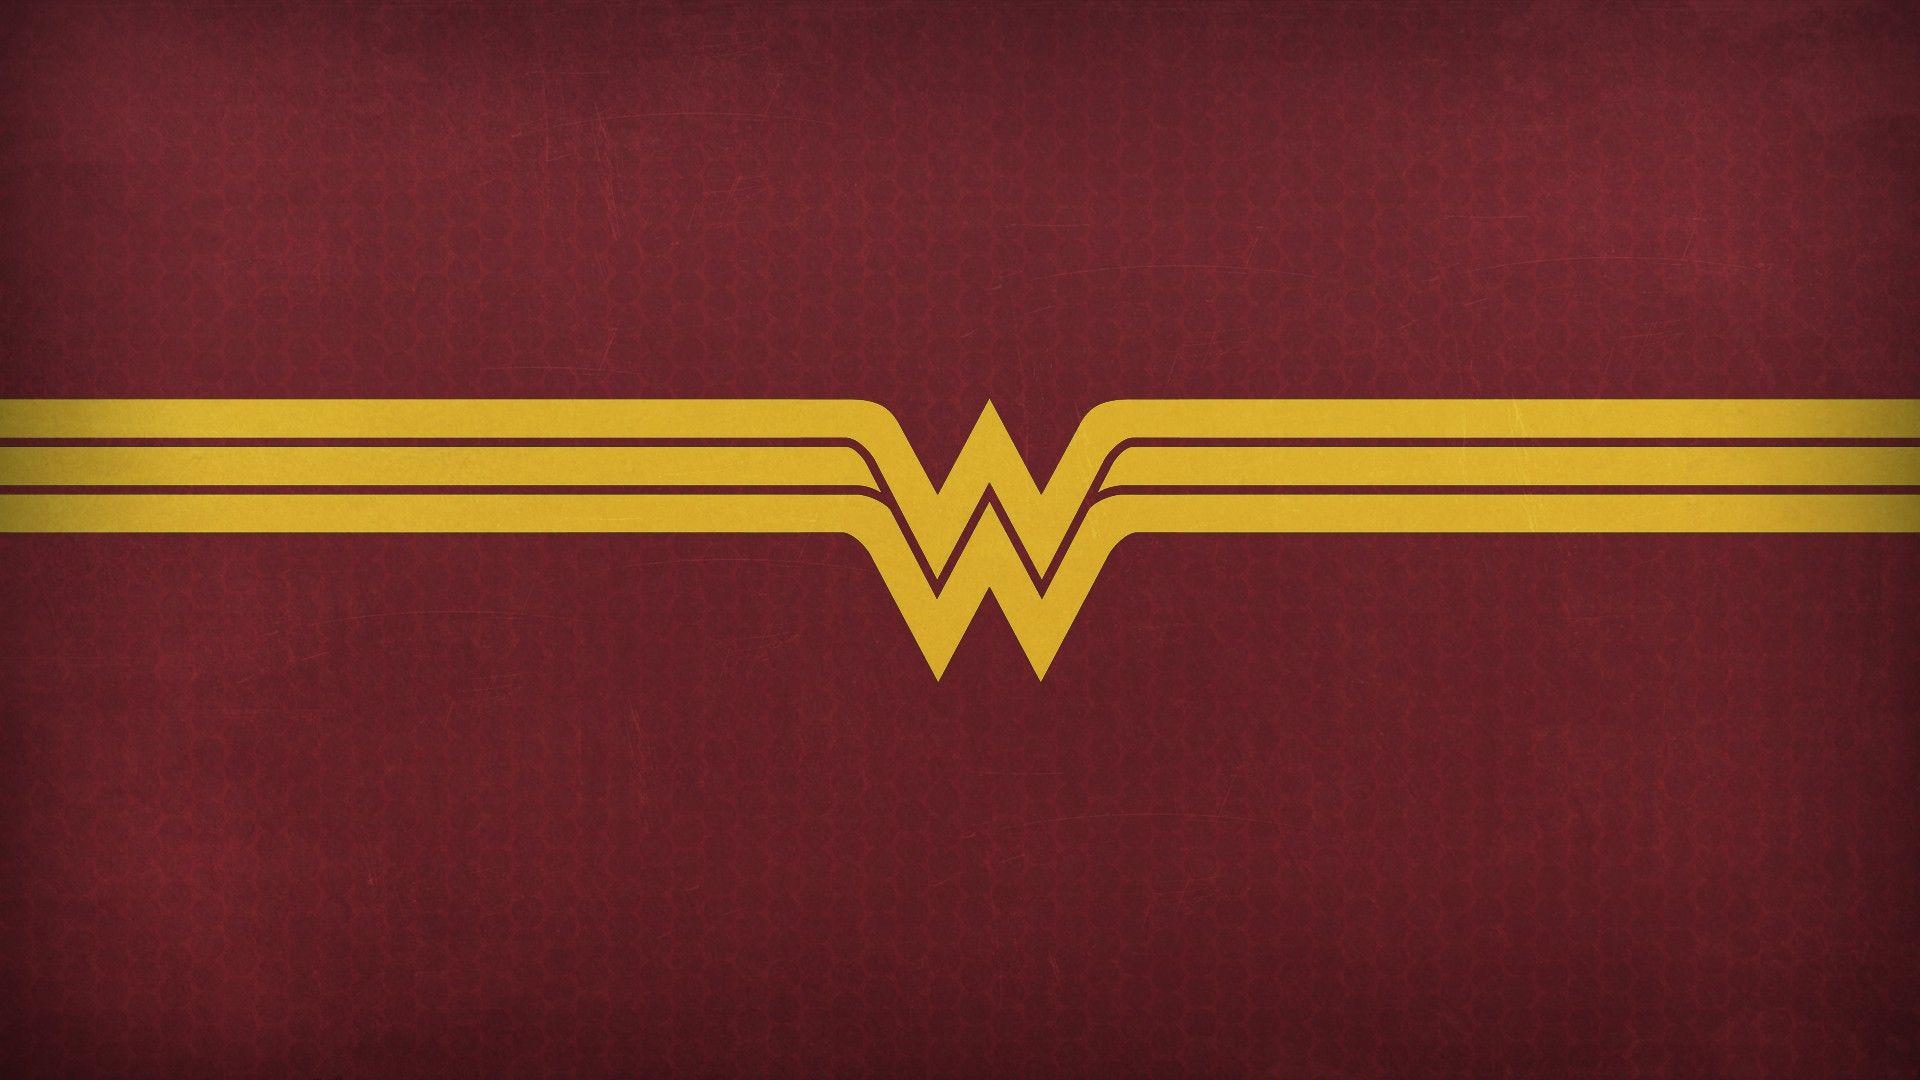 Wonder Woman Computer Wallpapers, Desktop Backgrounds | 1920x1080 ...